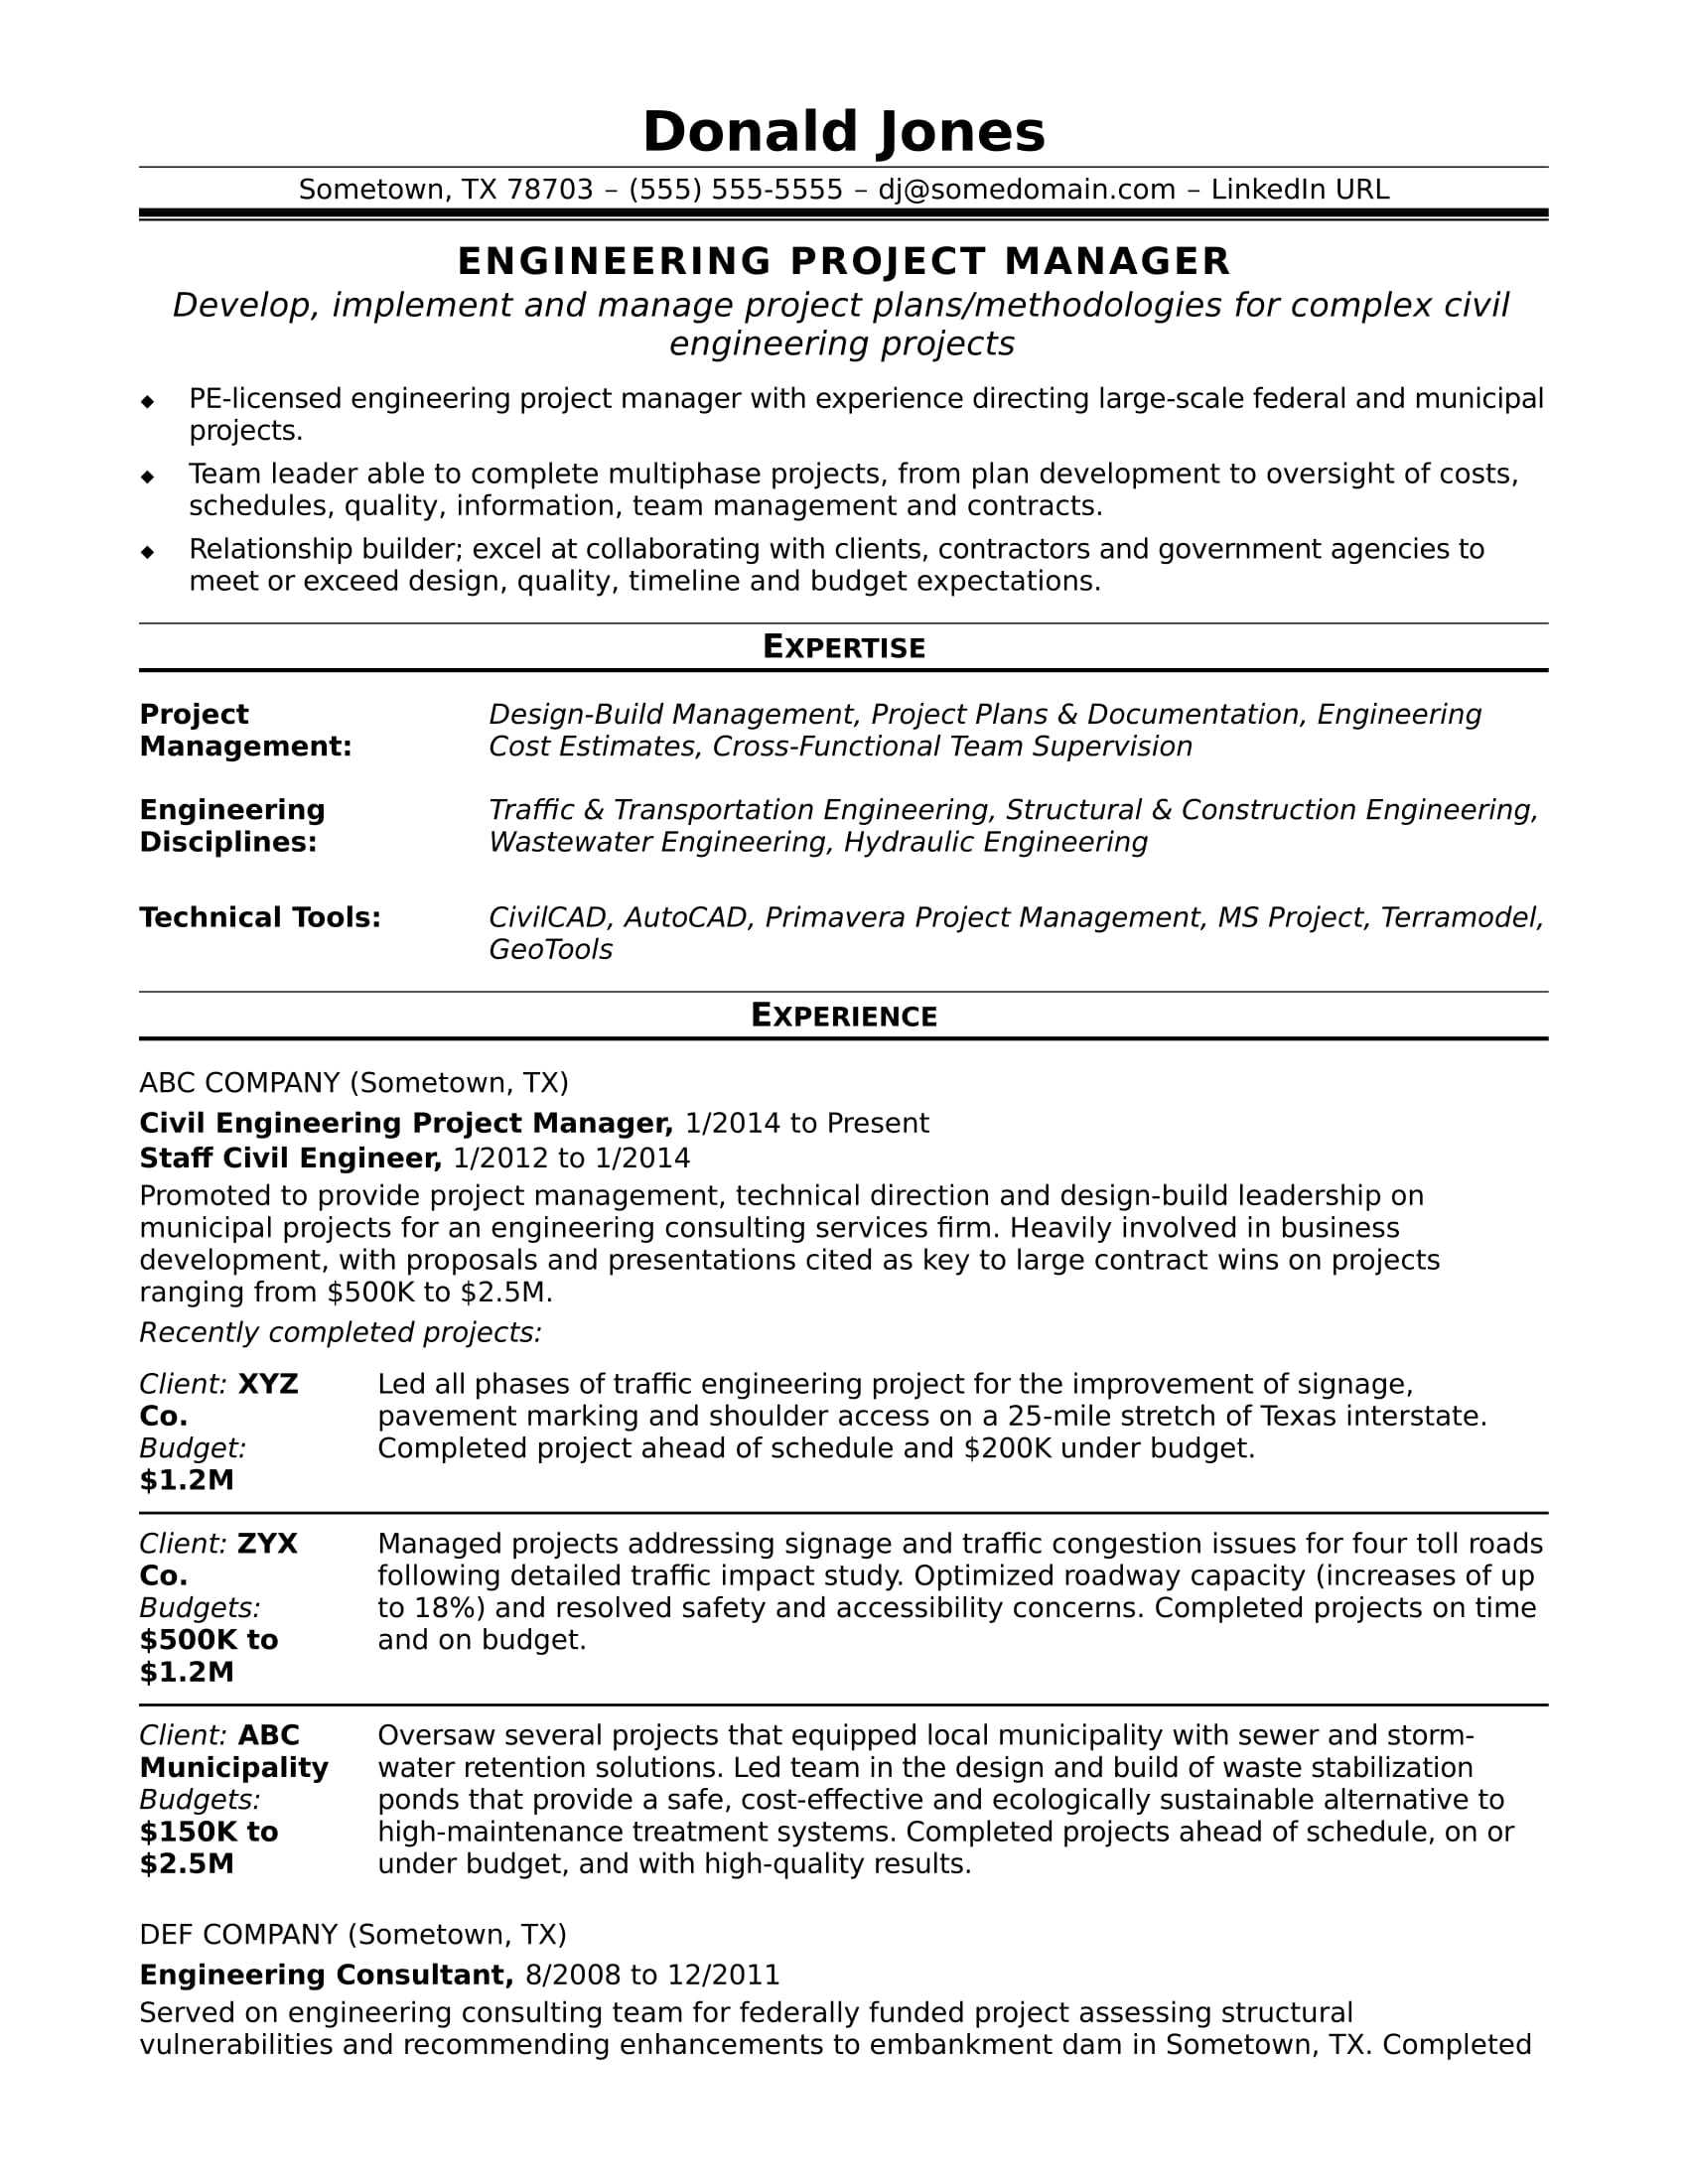 Wonderful Sample Resume For A Midlevel Engineering Project Manager